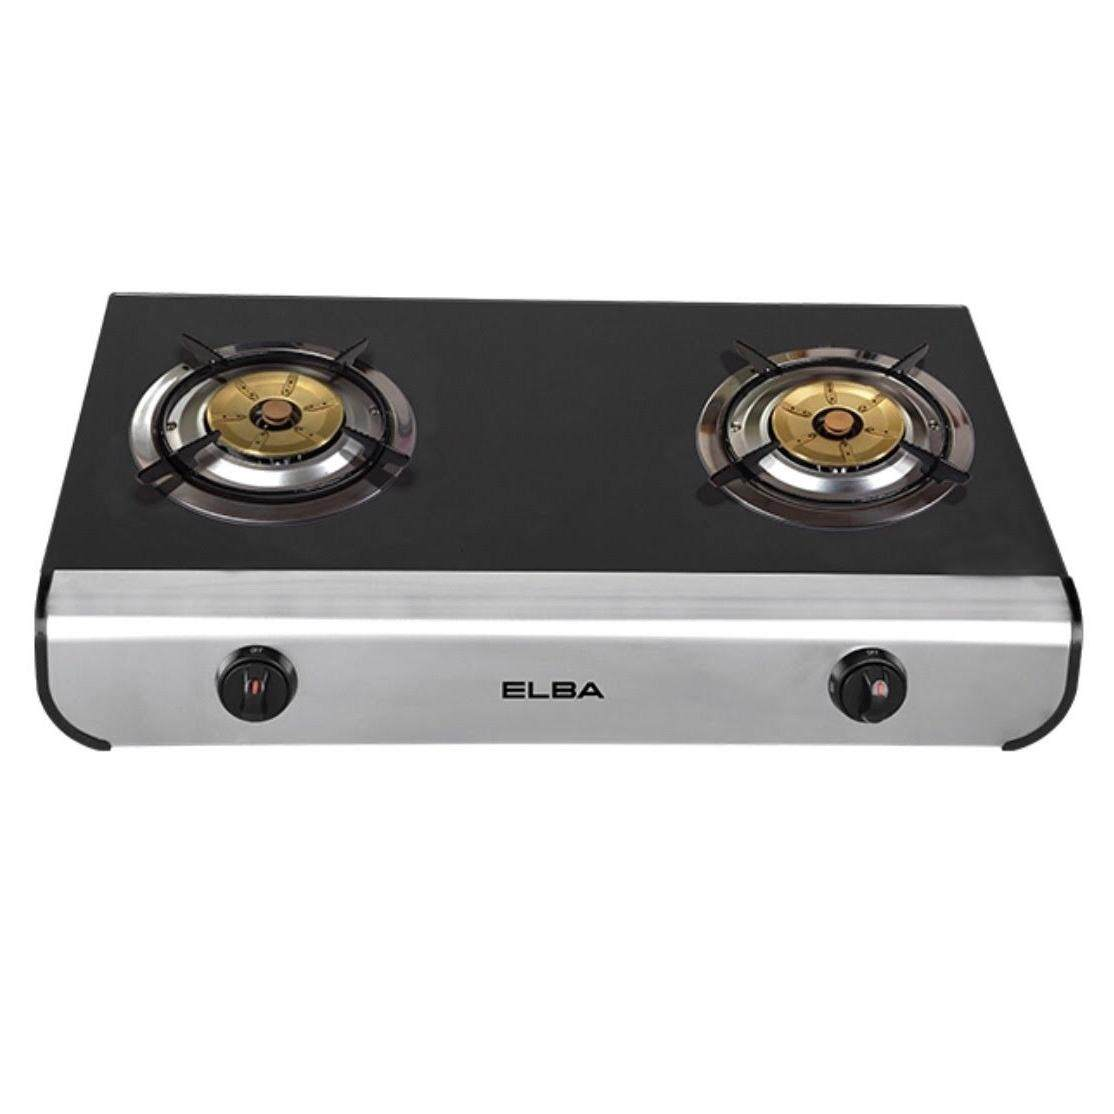 Elba Cooktops Ranges Price In Malaysia Best Lazada